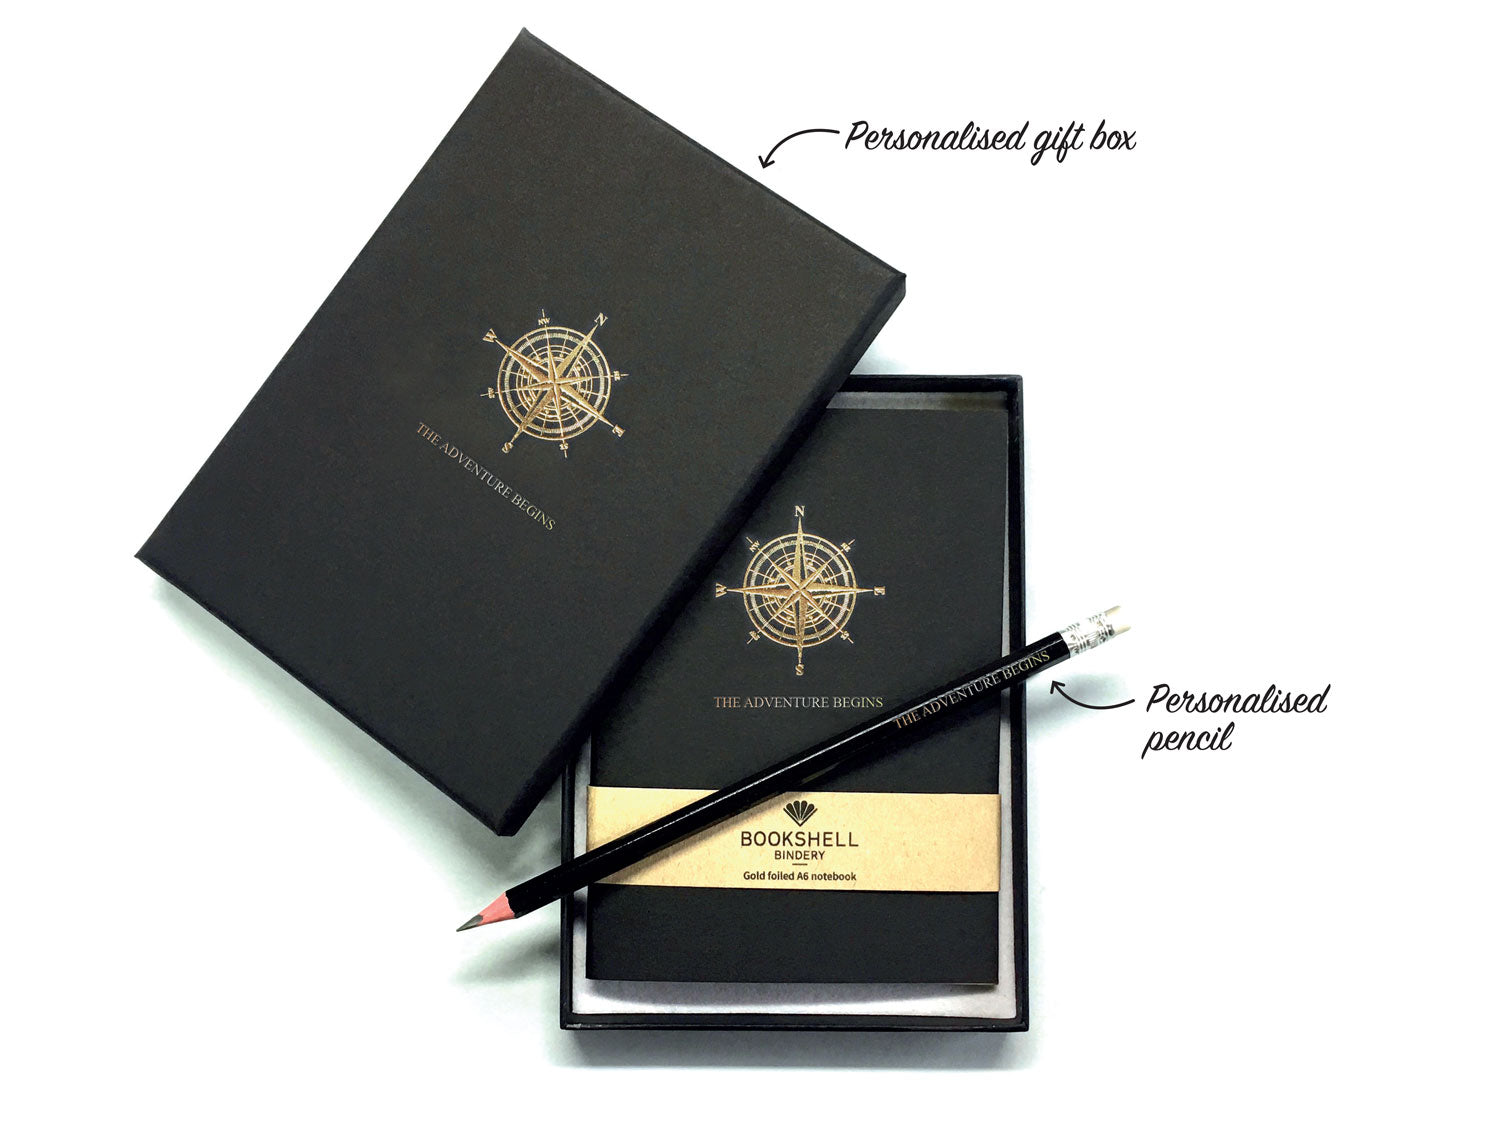 Personalised A6 notebook from Bookshell with optional gift box and pencil